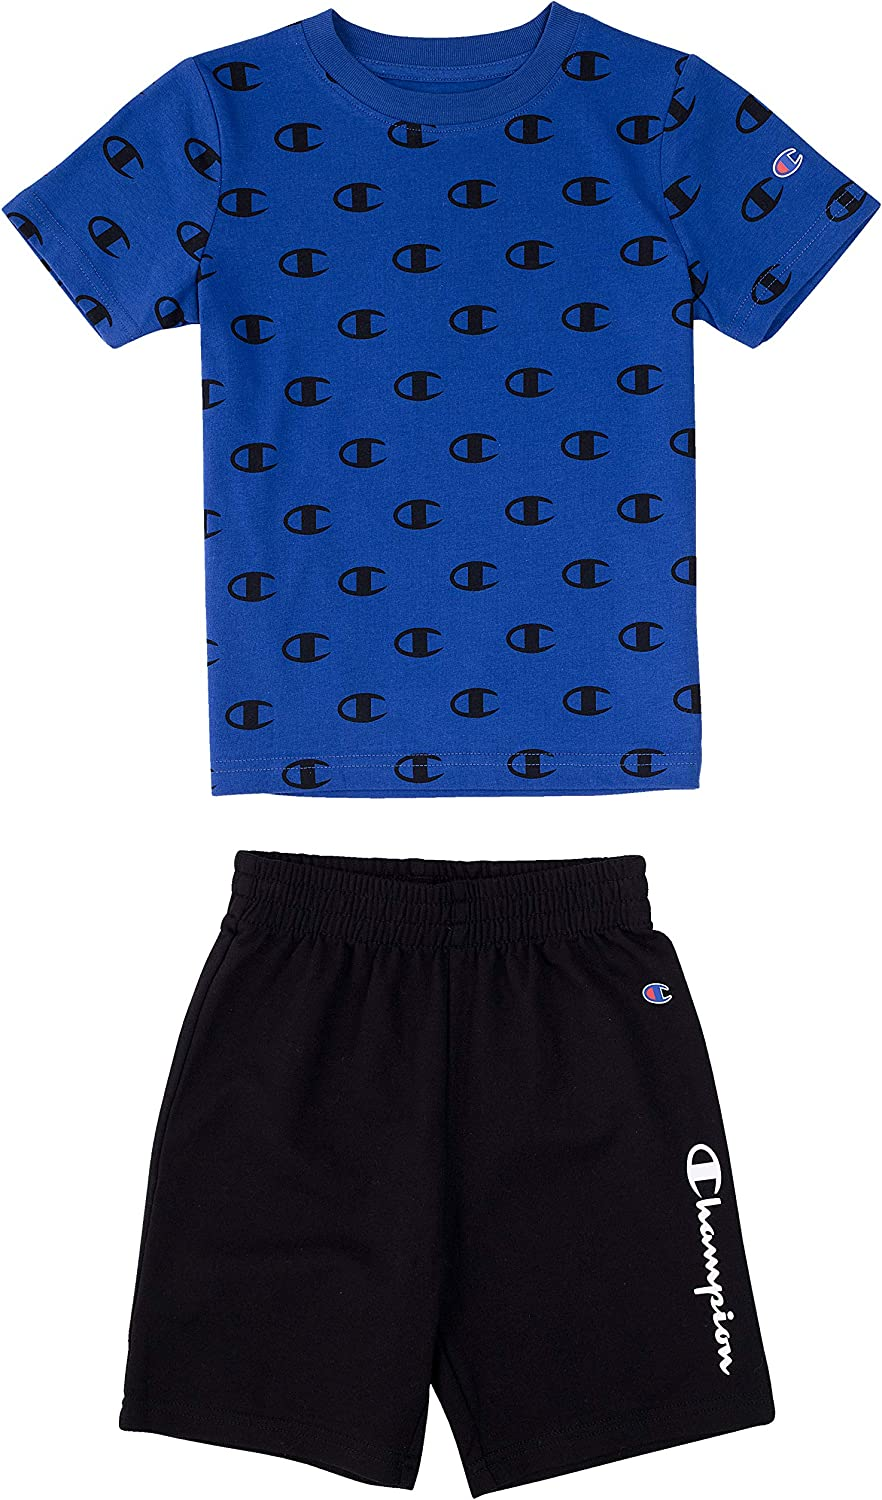 Champion Little Boys 2-7 Short Sets Mesh and French Terry Shorts